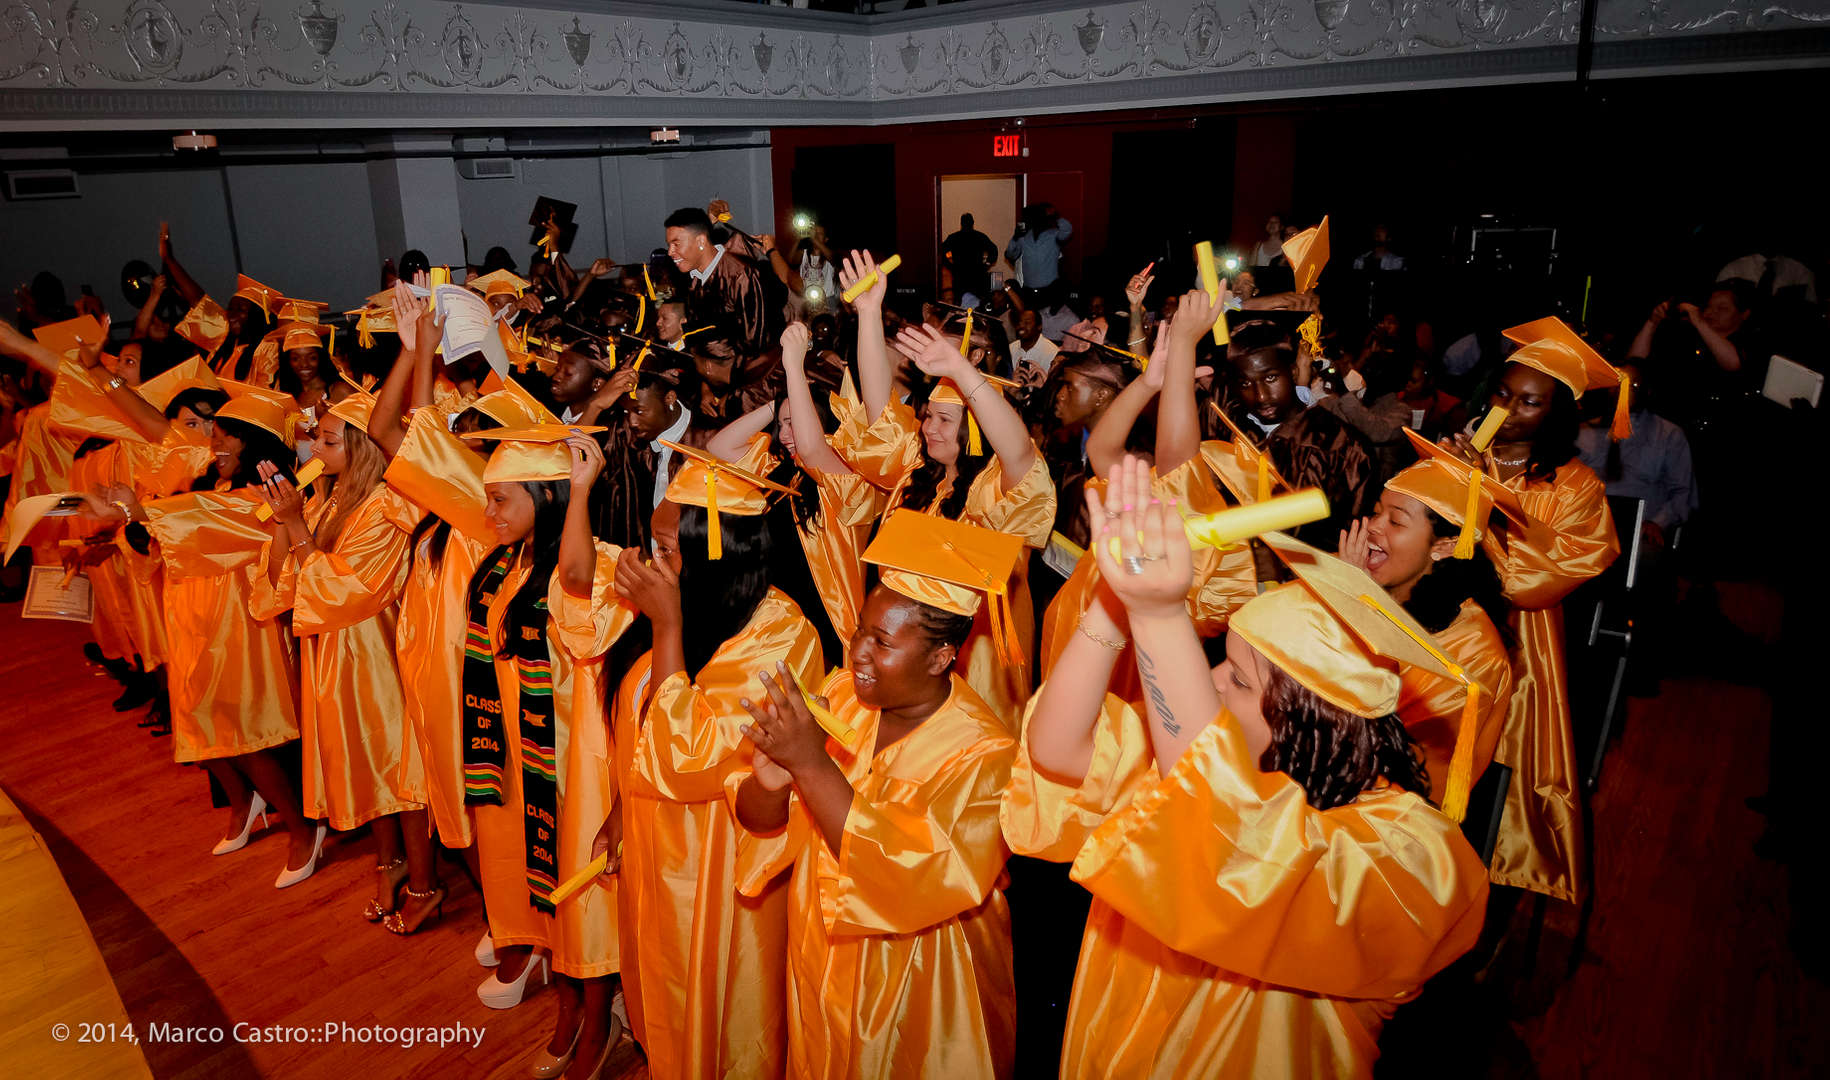 Seniors celebrating during graduation